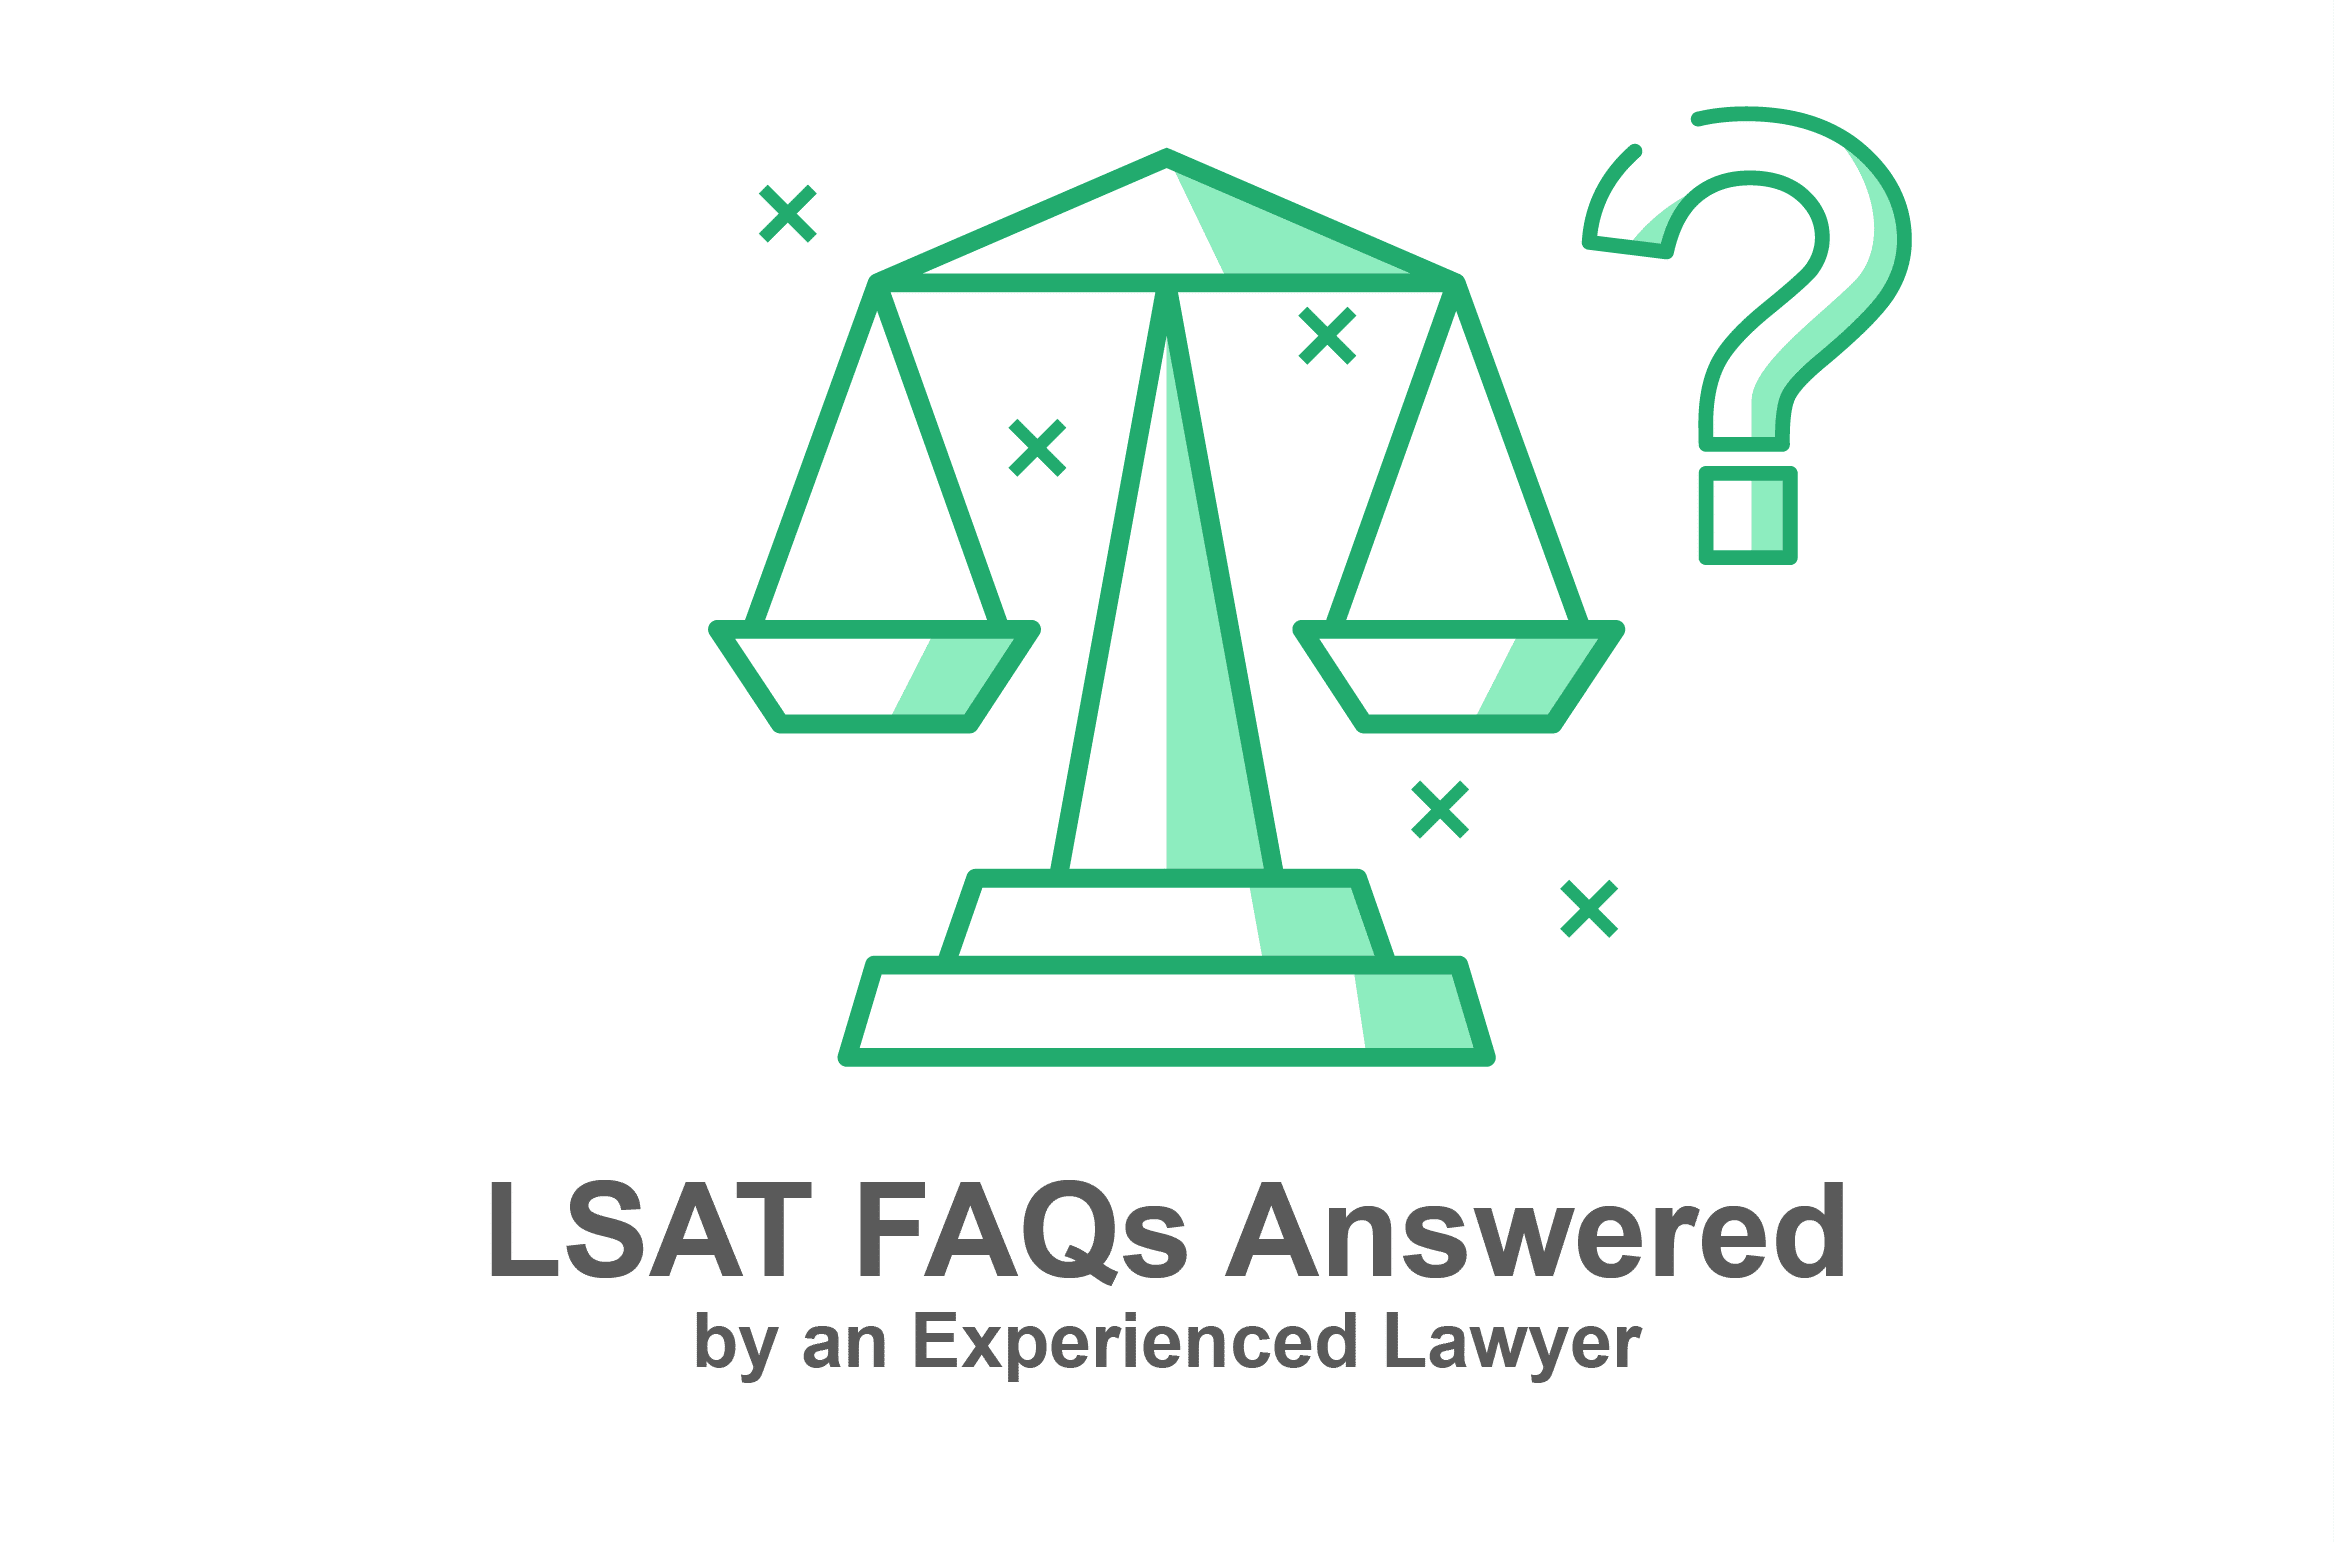 LSAT FAQs Answered by an Experienced Lawyer